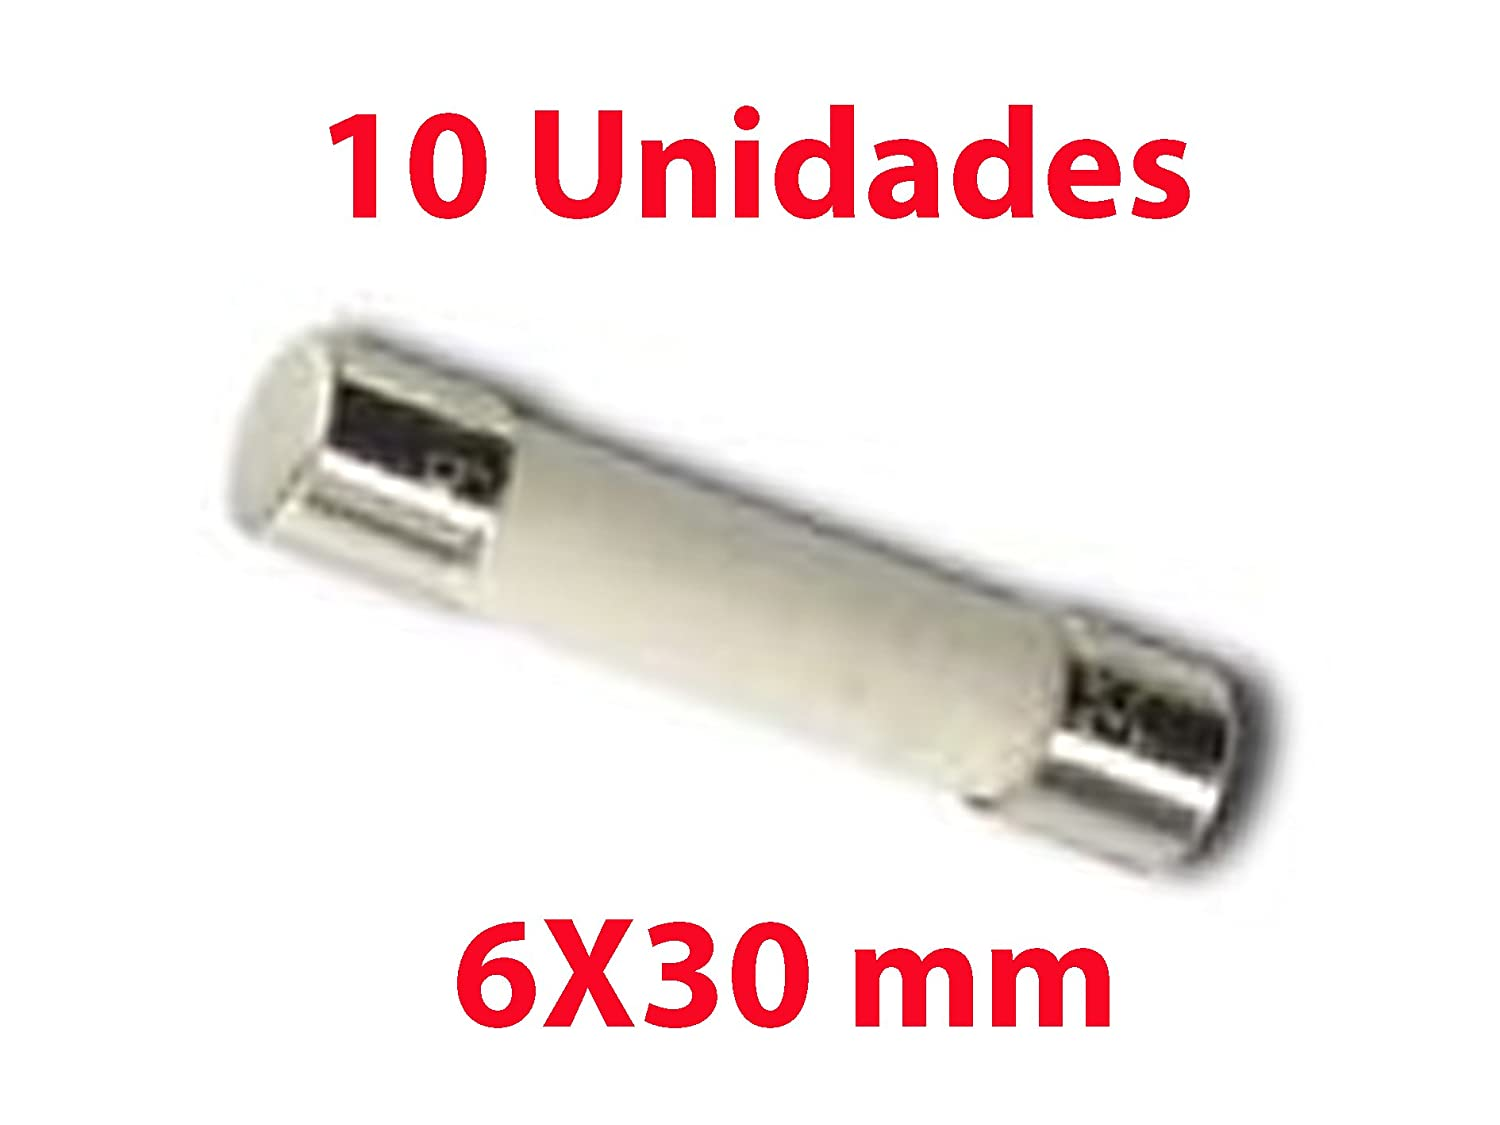 10X FUSIBLE de Cer/ámica 6X30 mm 8A 250V